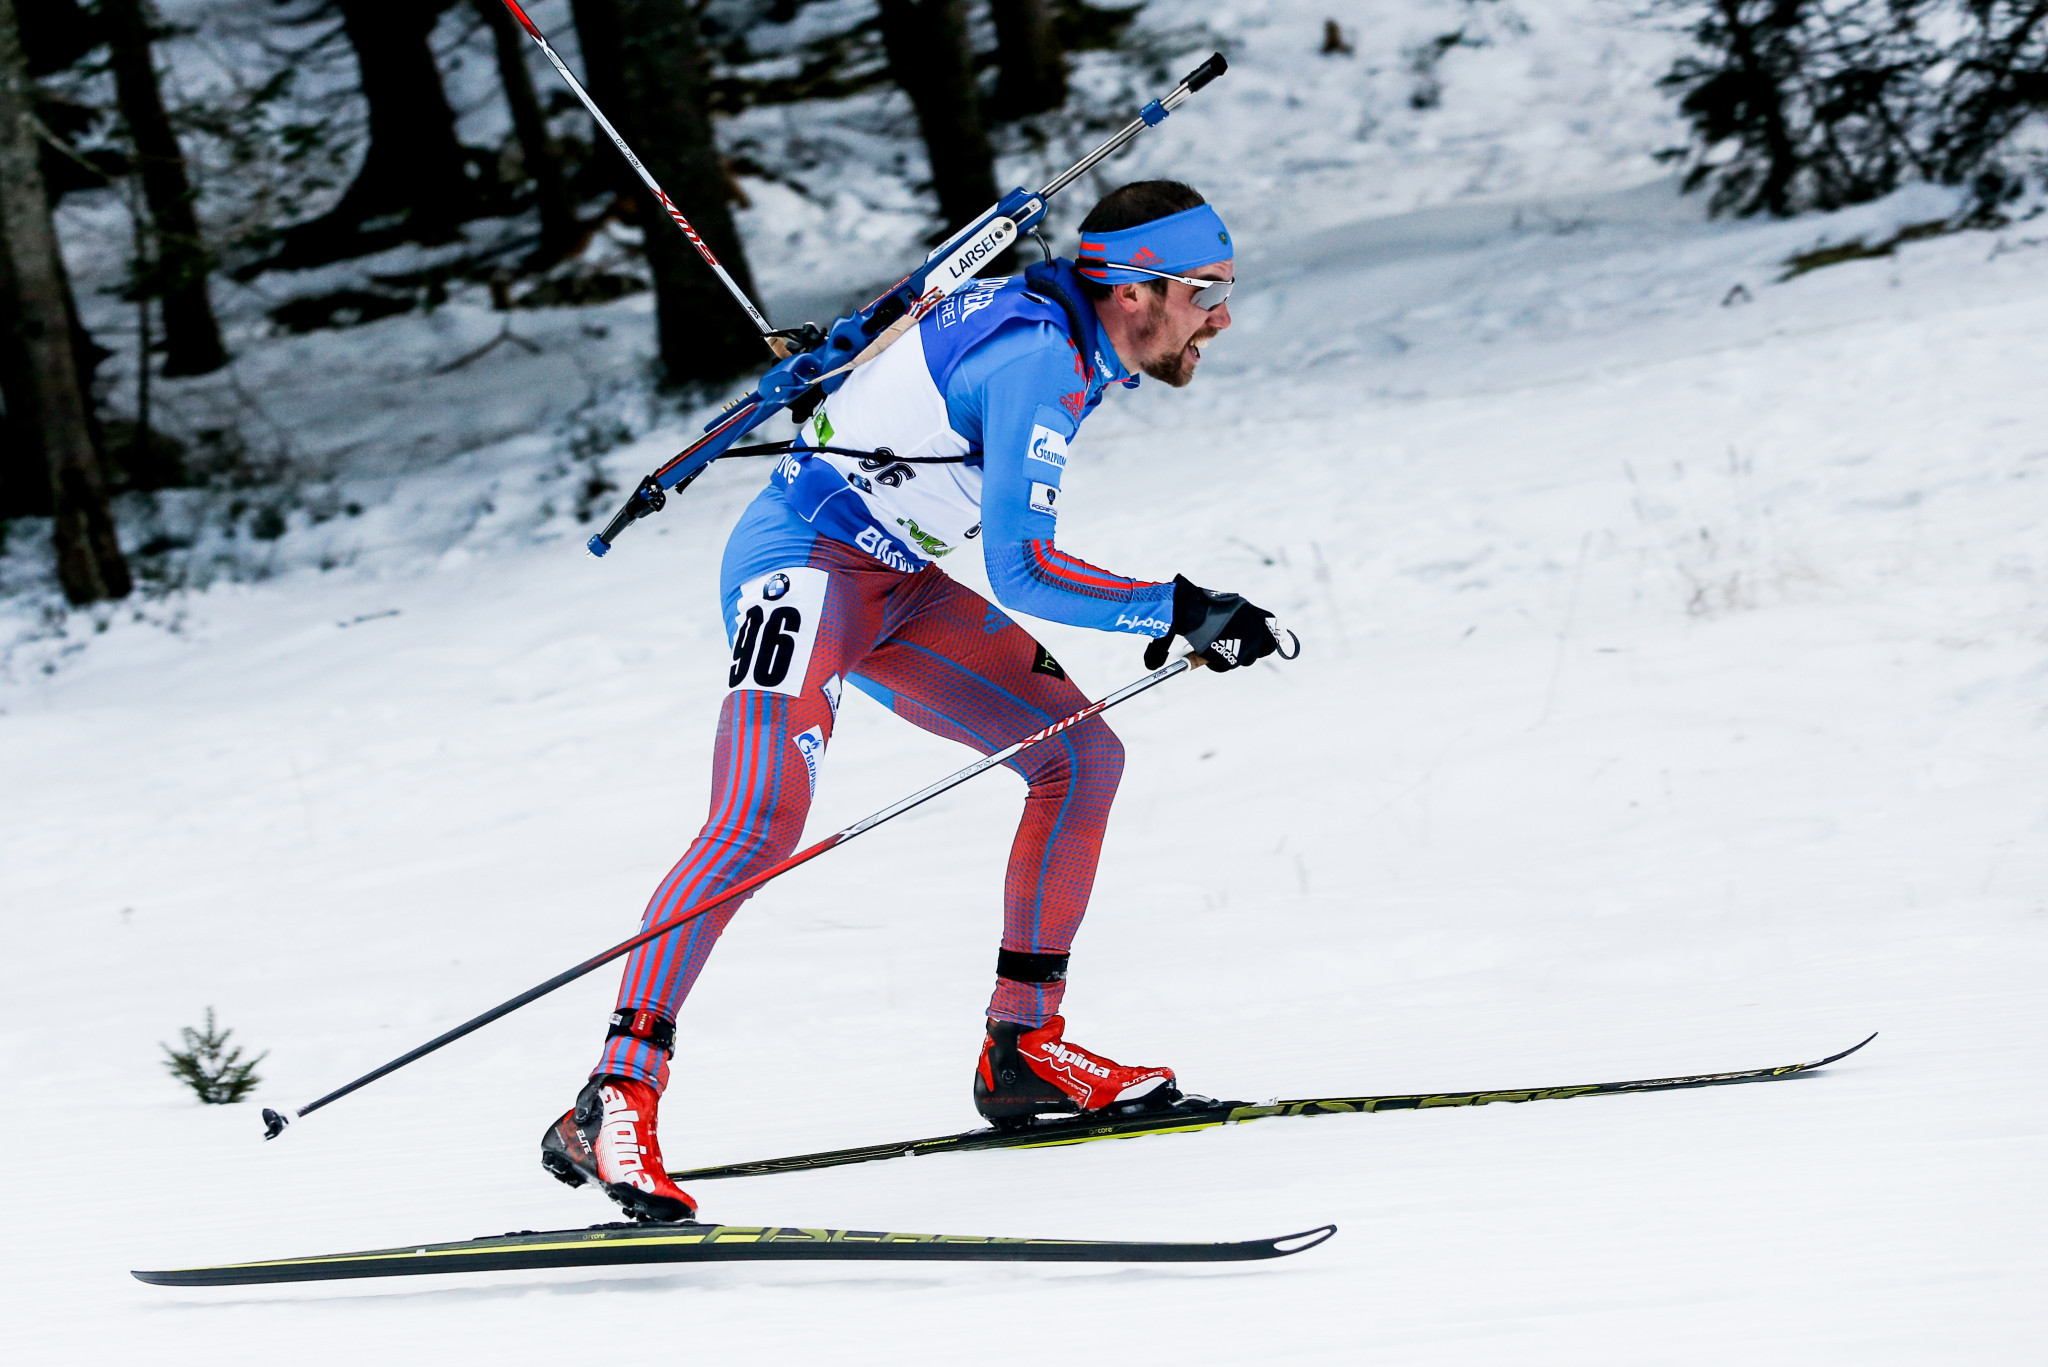 Biathlete Slepov cleared by RUSADA in whereabouts failures case